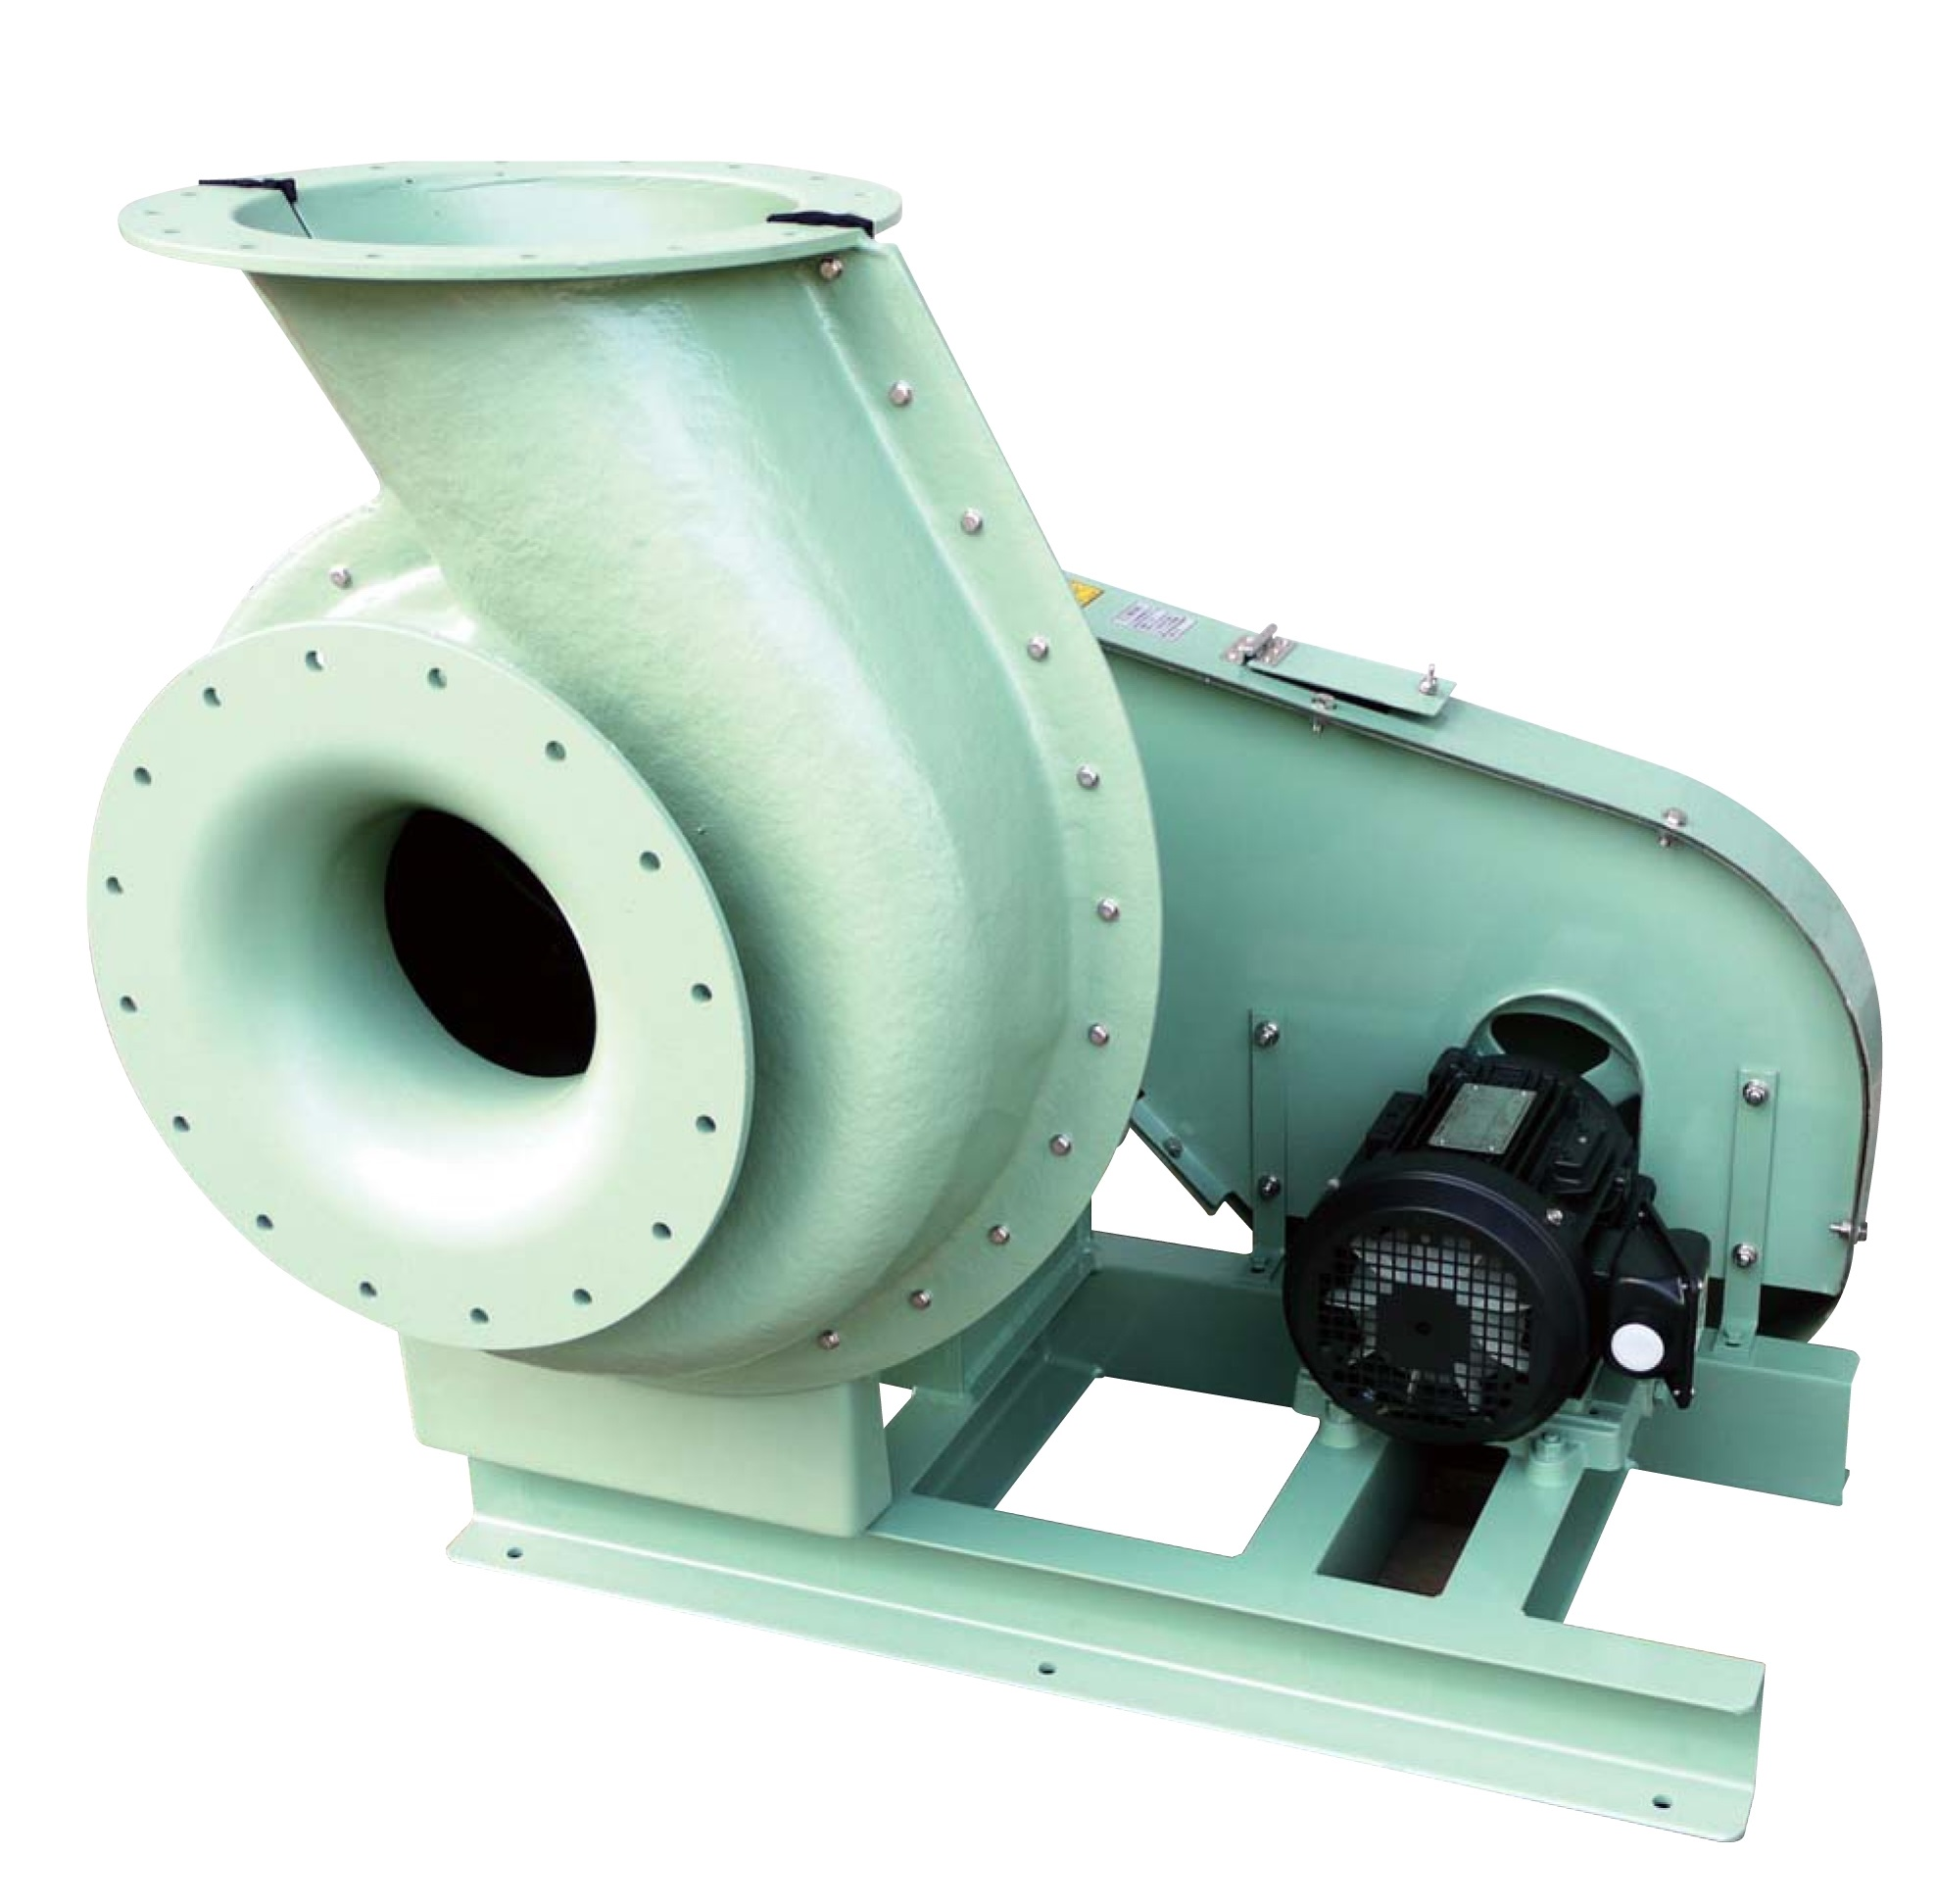 Seikow Chemical Engineering Machinery Ltd High Efficient Frp